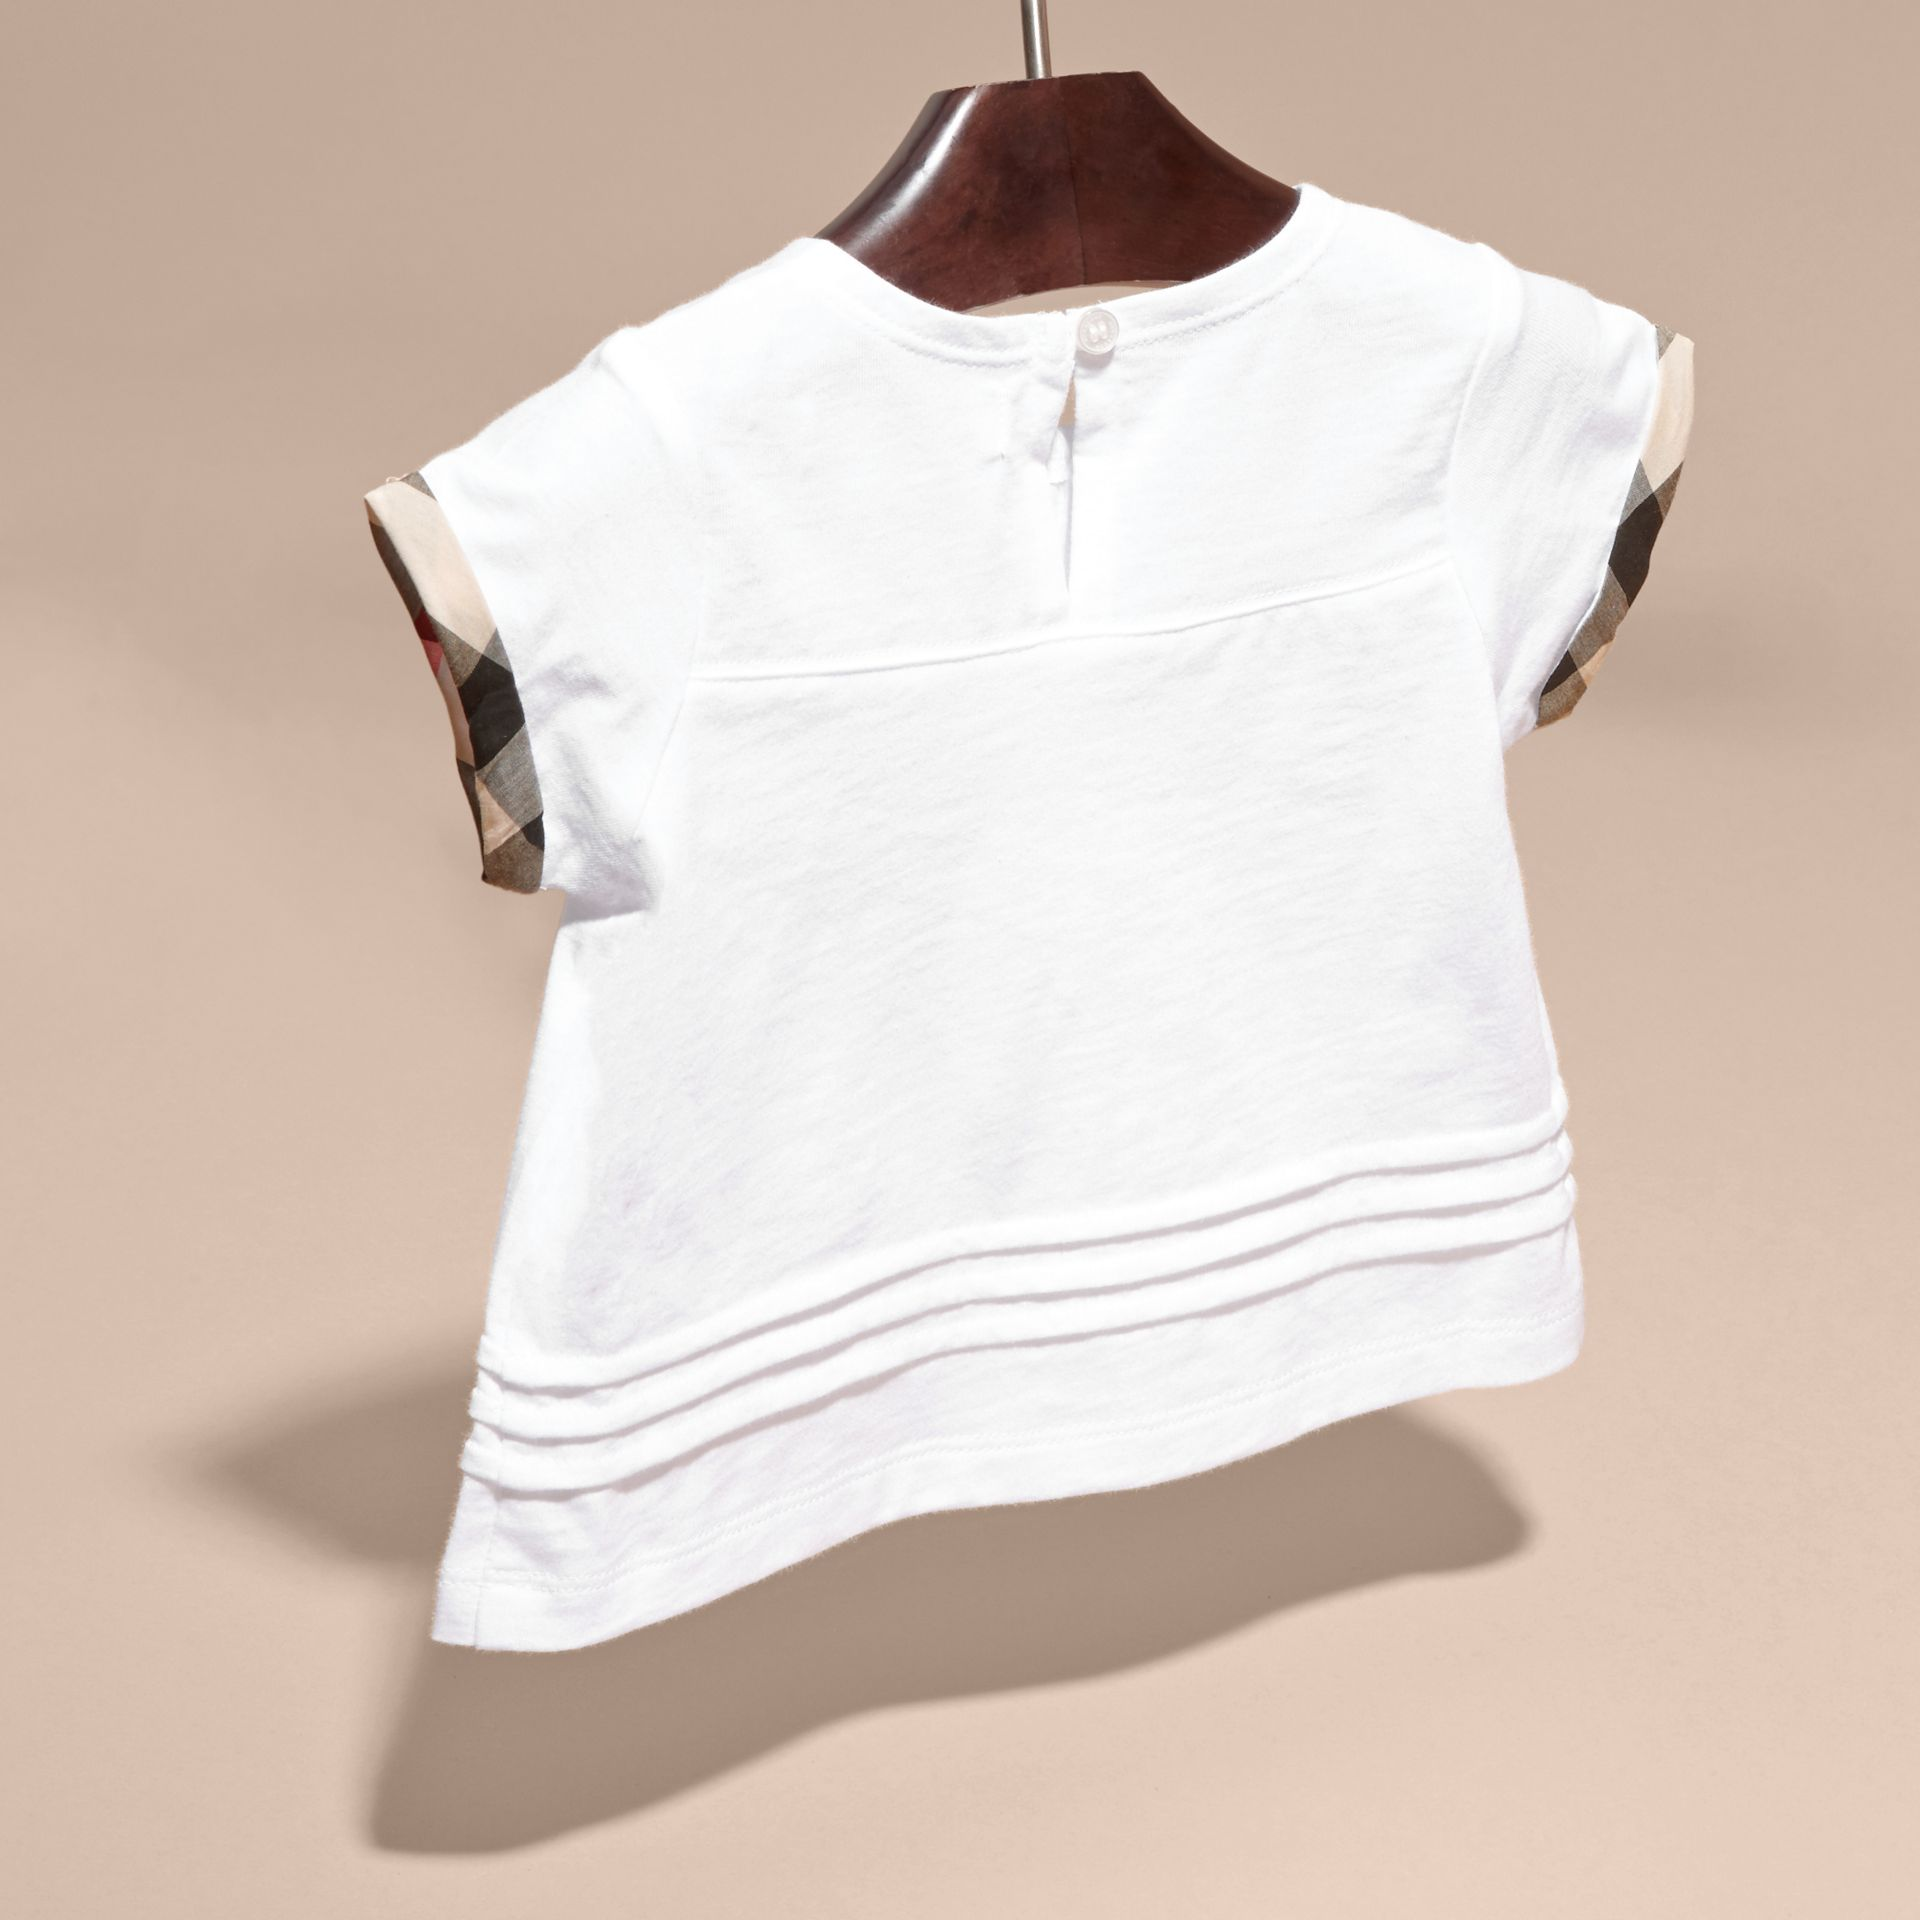 Pleat and Check Detail Cotton T-shirt in White | Burberry Canada - gallery image 4